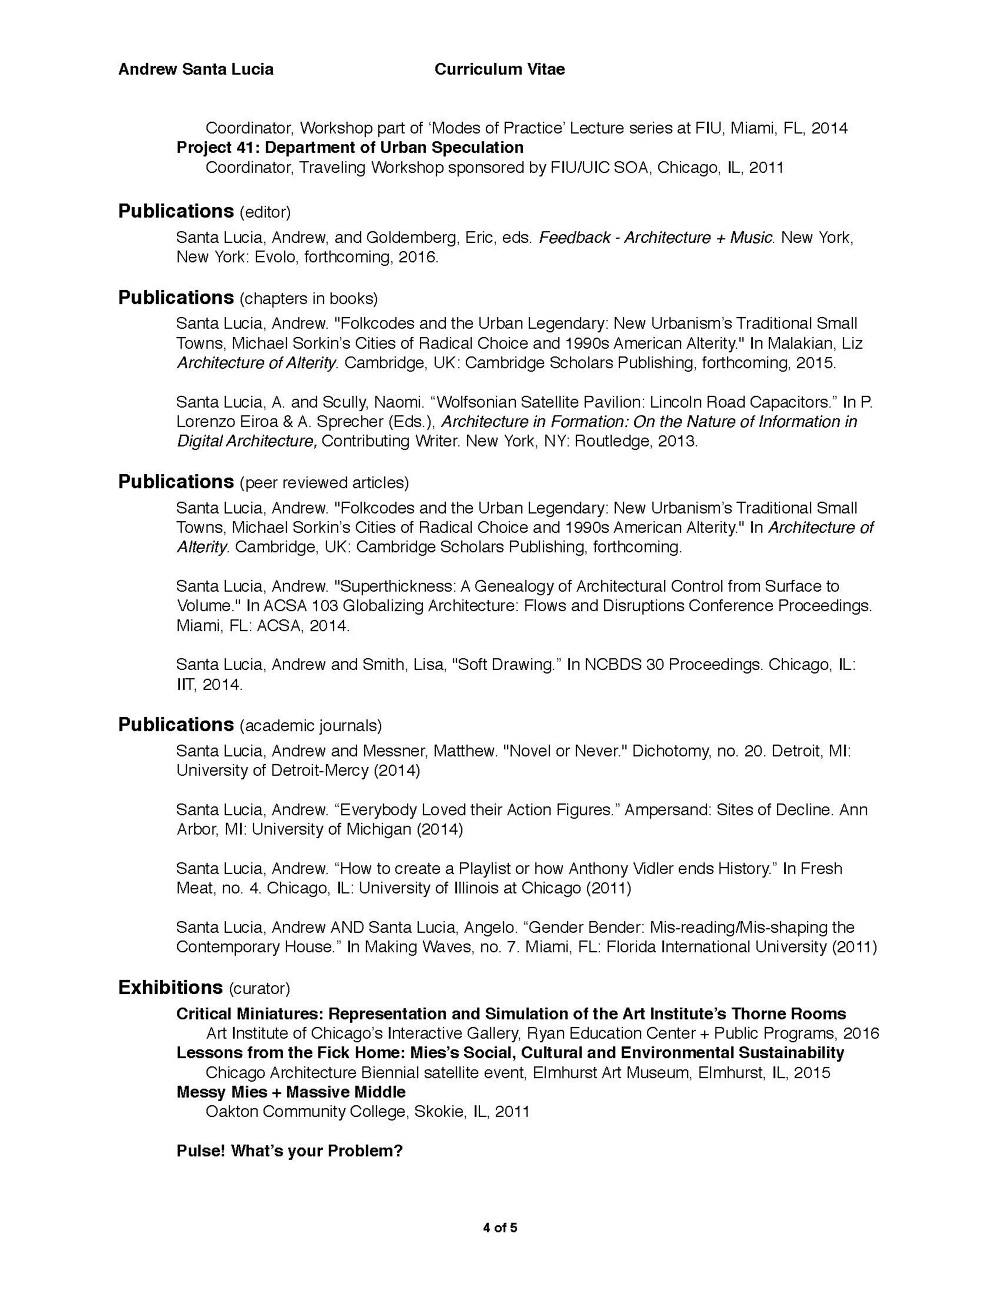 Combination Style Resume PDF Free Download